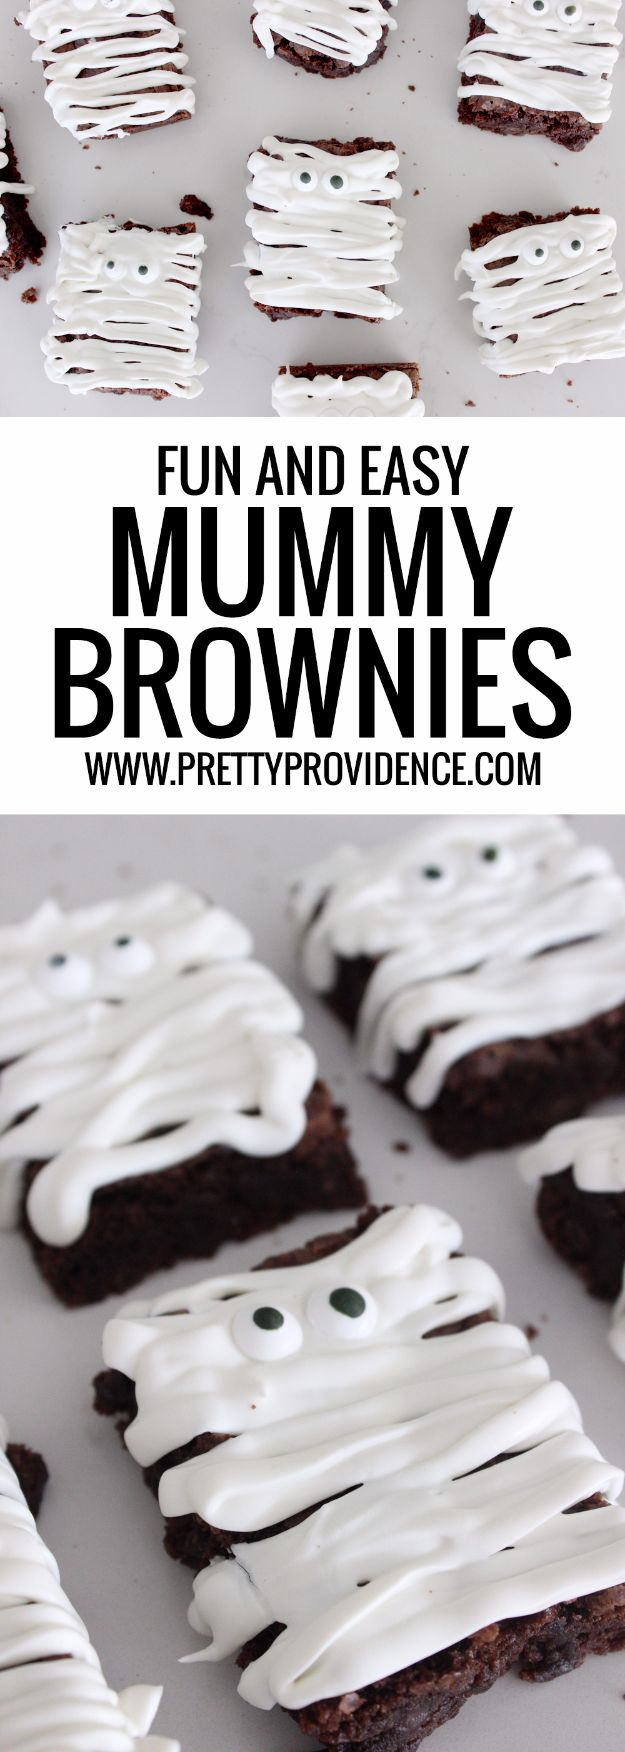 Creative Halloween Party Recipe Ideas Pinterest- Easy Mummy Brownies Recipe - Healthy Ideas for Kids for School, Teens and Adults - Easy and Quick Recipes and Idea for Dips, Chips, Spooky Cookies and Treats - Appetizers and Finger Foods Made With Vegetables, No Candy, Cheap Food, Scary DIY Party Foods With Step by Step Tutorials #halloween #halloweenrecipes #halloweenparty